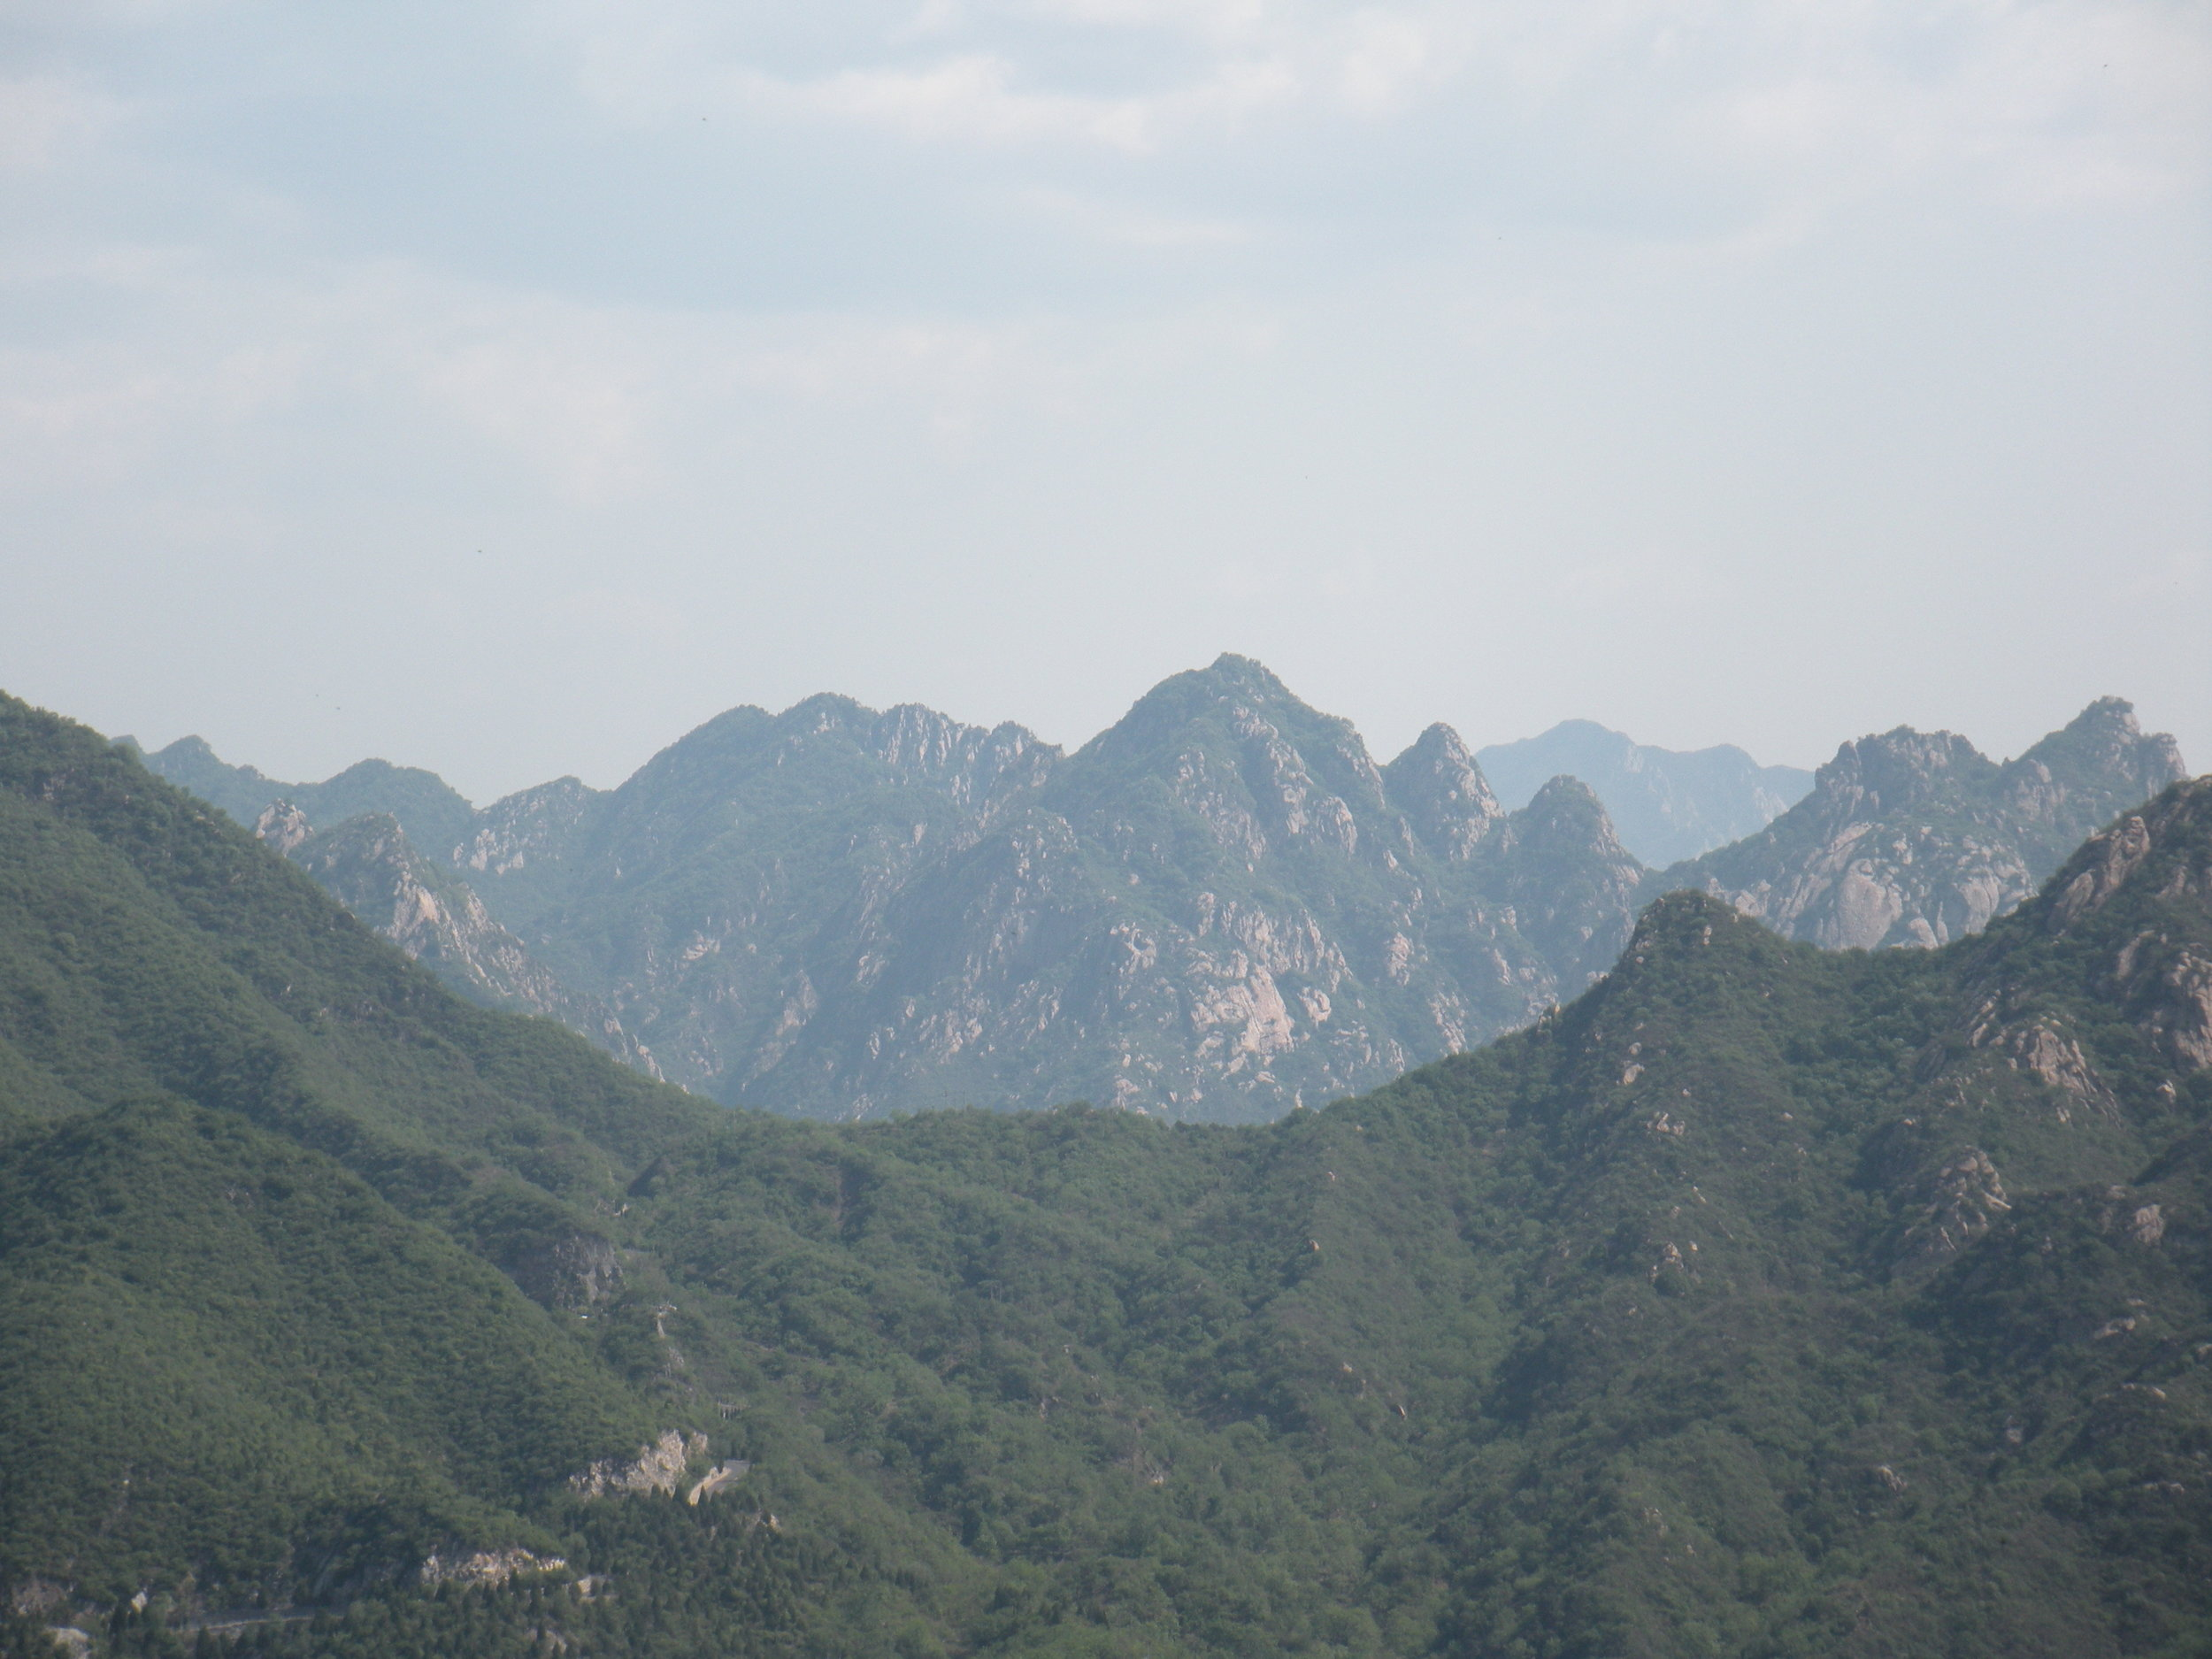 From the Great Wall